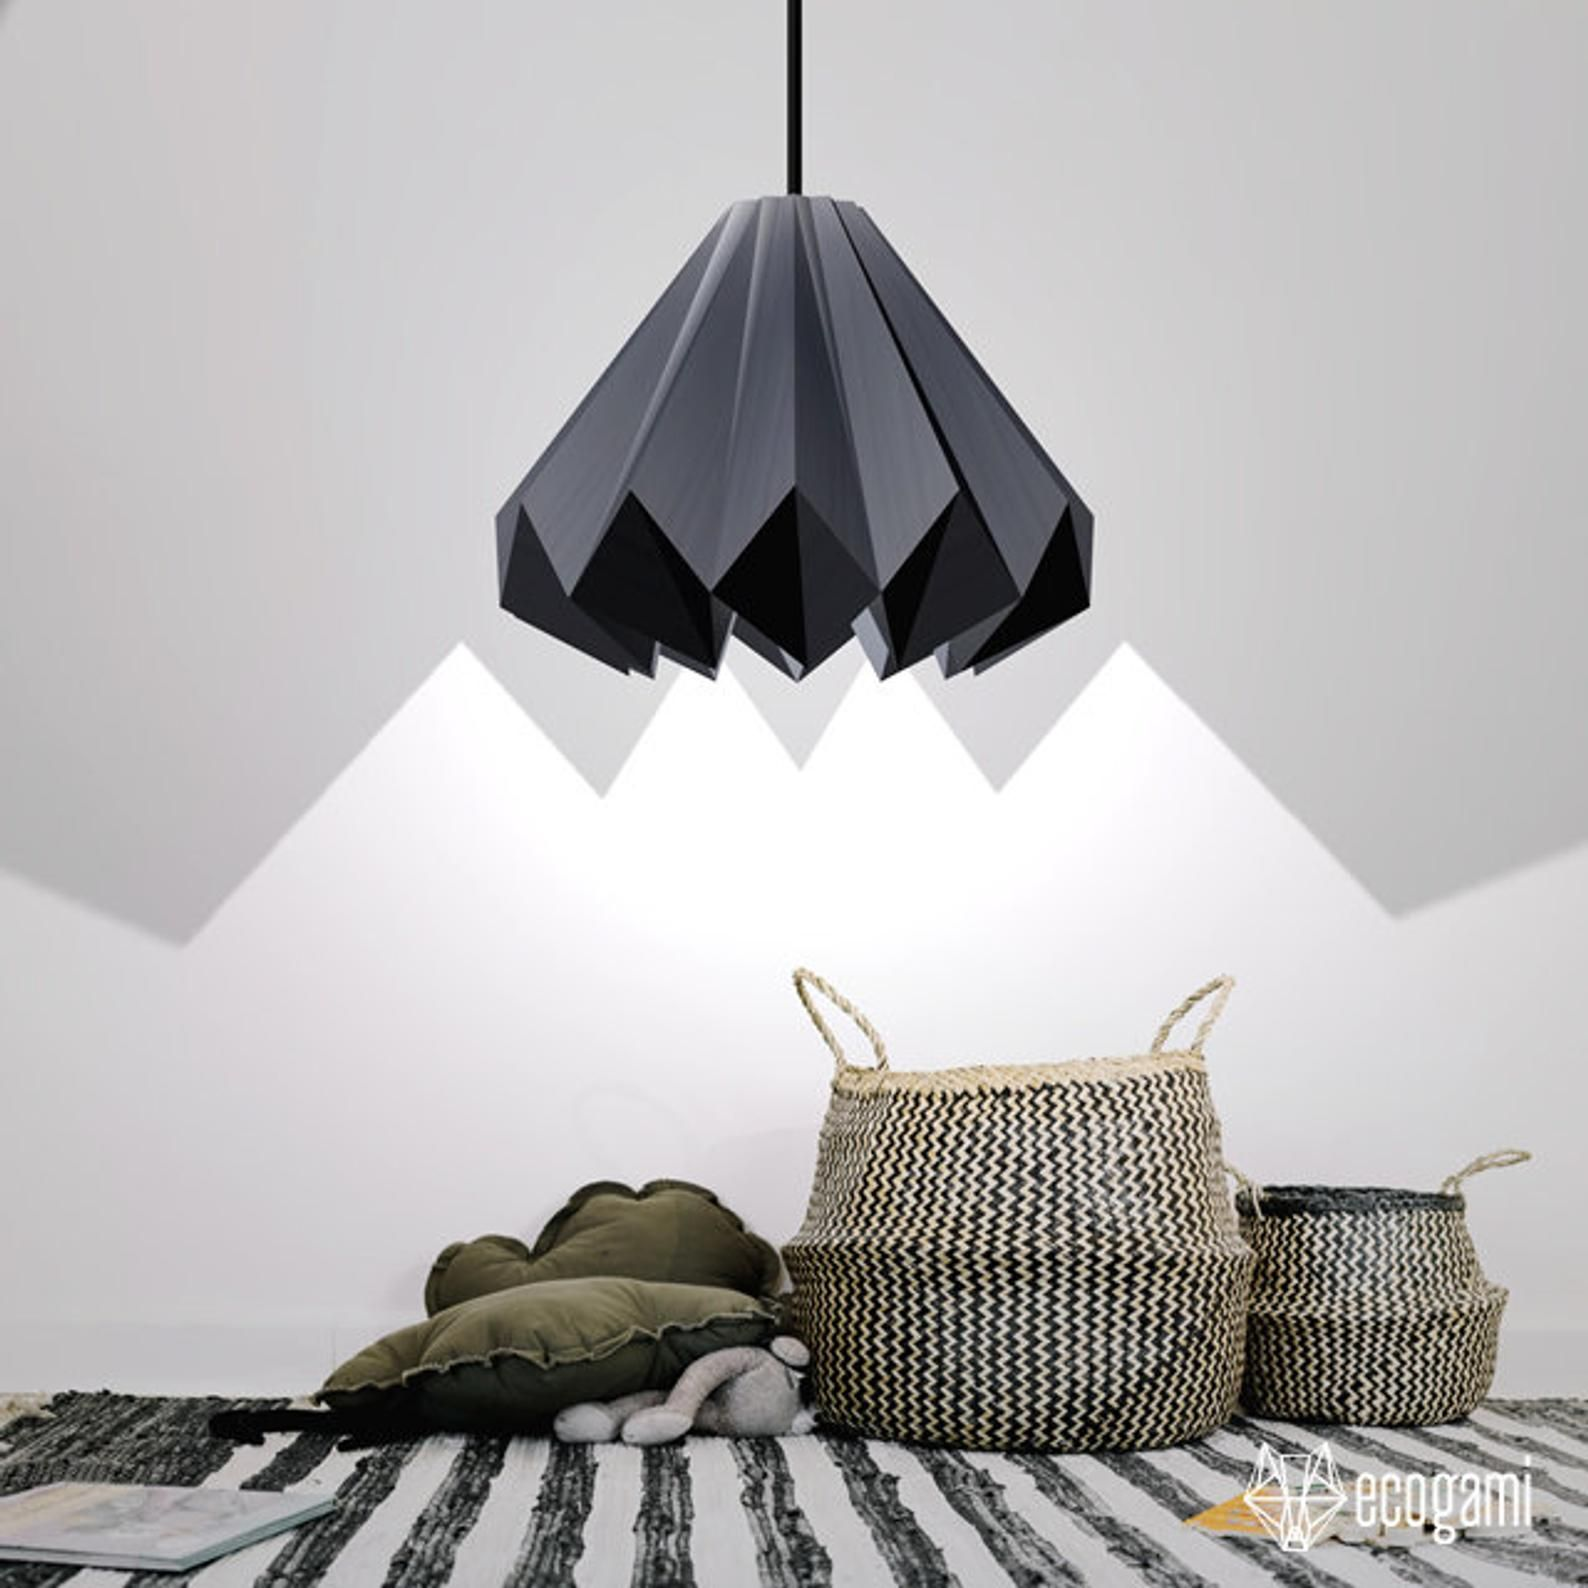 Diy Paper Lampshade Origami I Perfect For Your Lighting Etsy In 2020 Paper Lampshade Diy Paper Origami Lamp